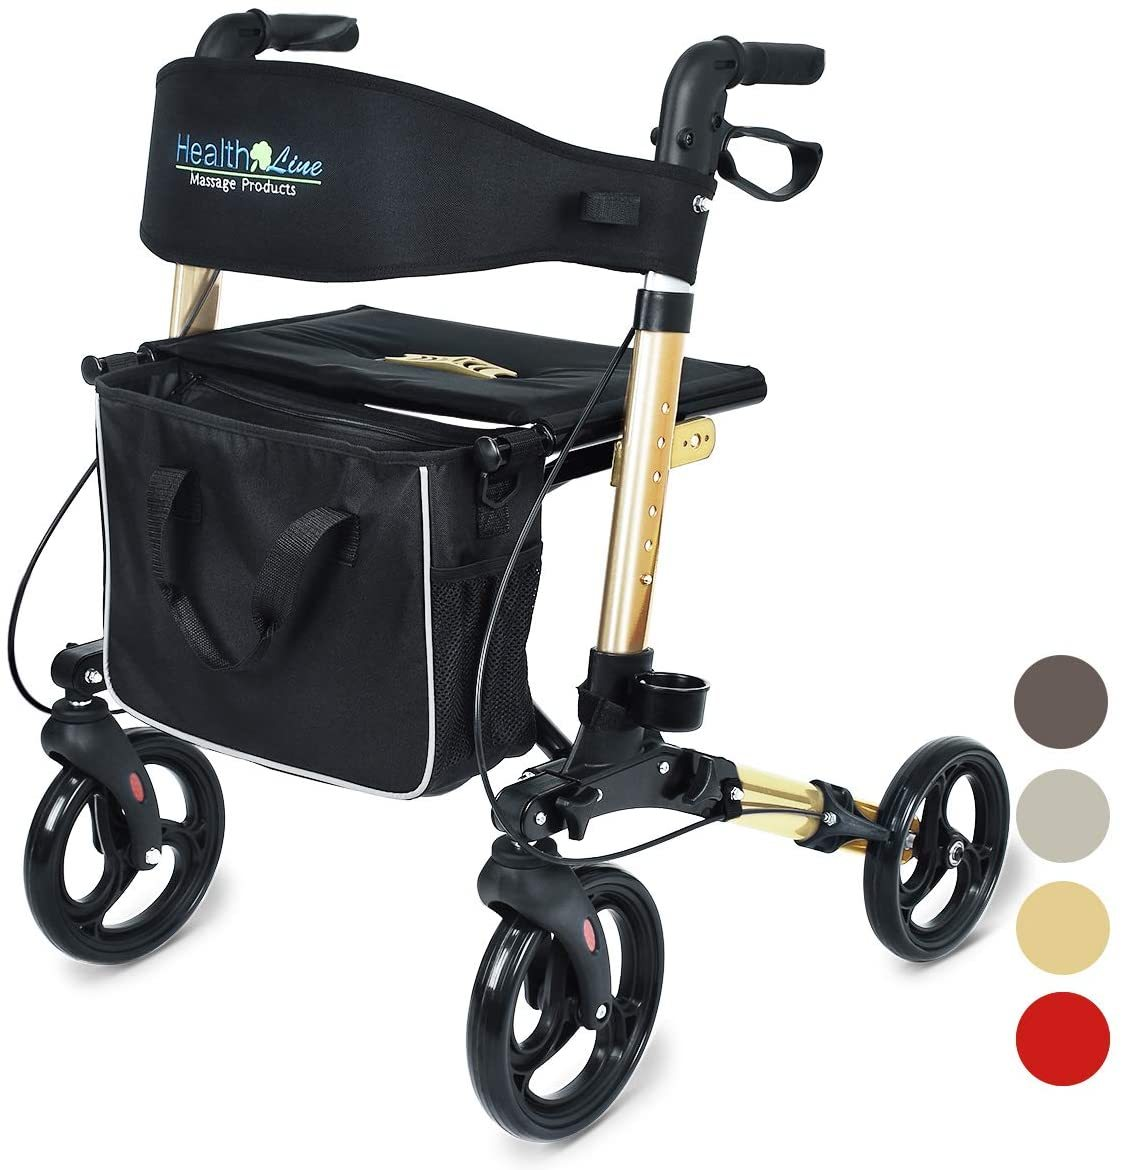 Compact Rollator for Seniors, Aluminum Side-Fold Rolling Walker with Paded Seat, Bright Champagne